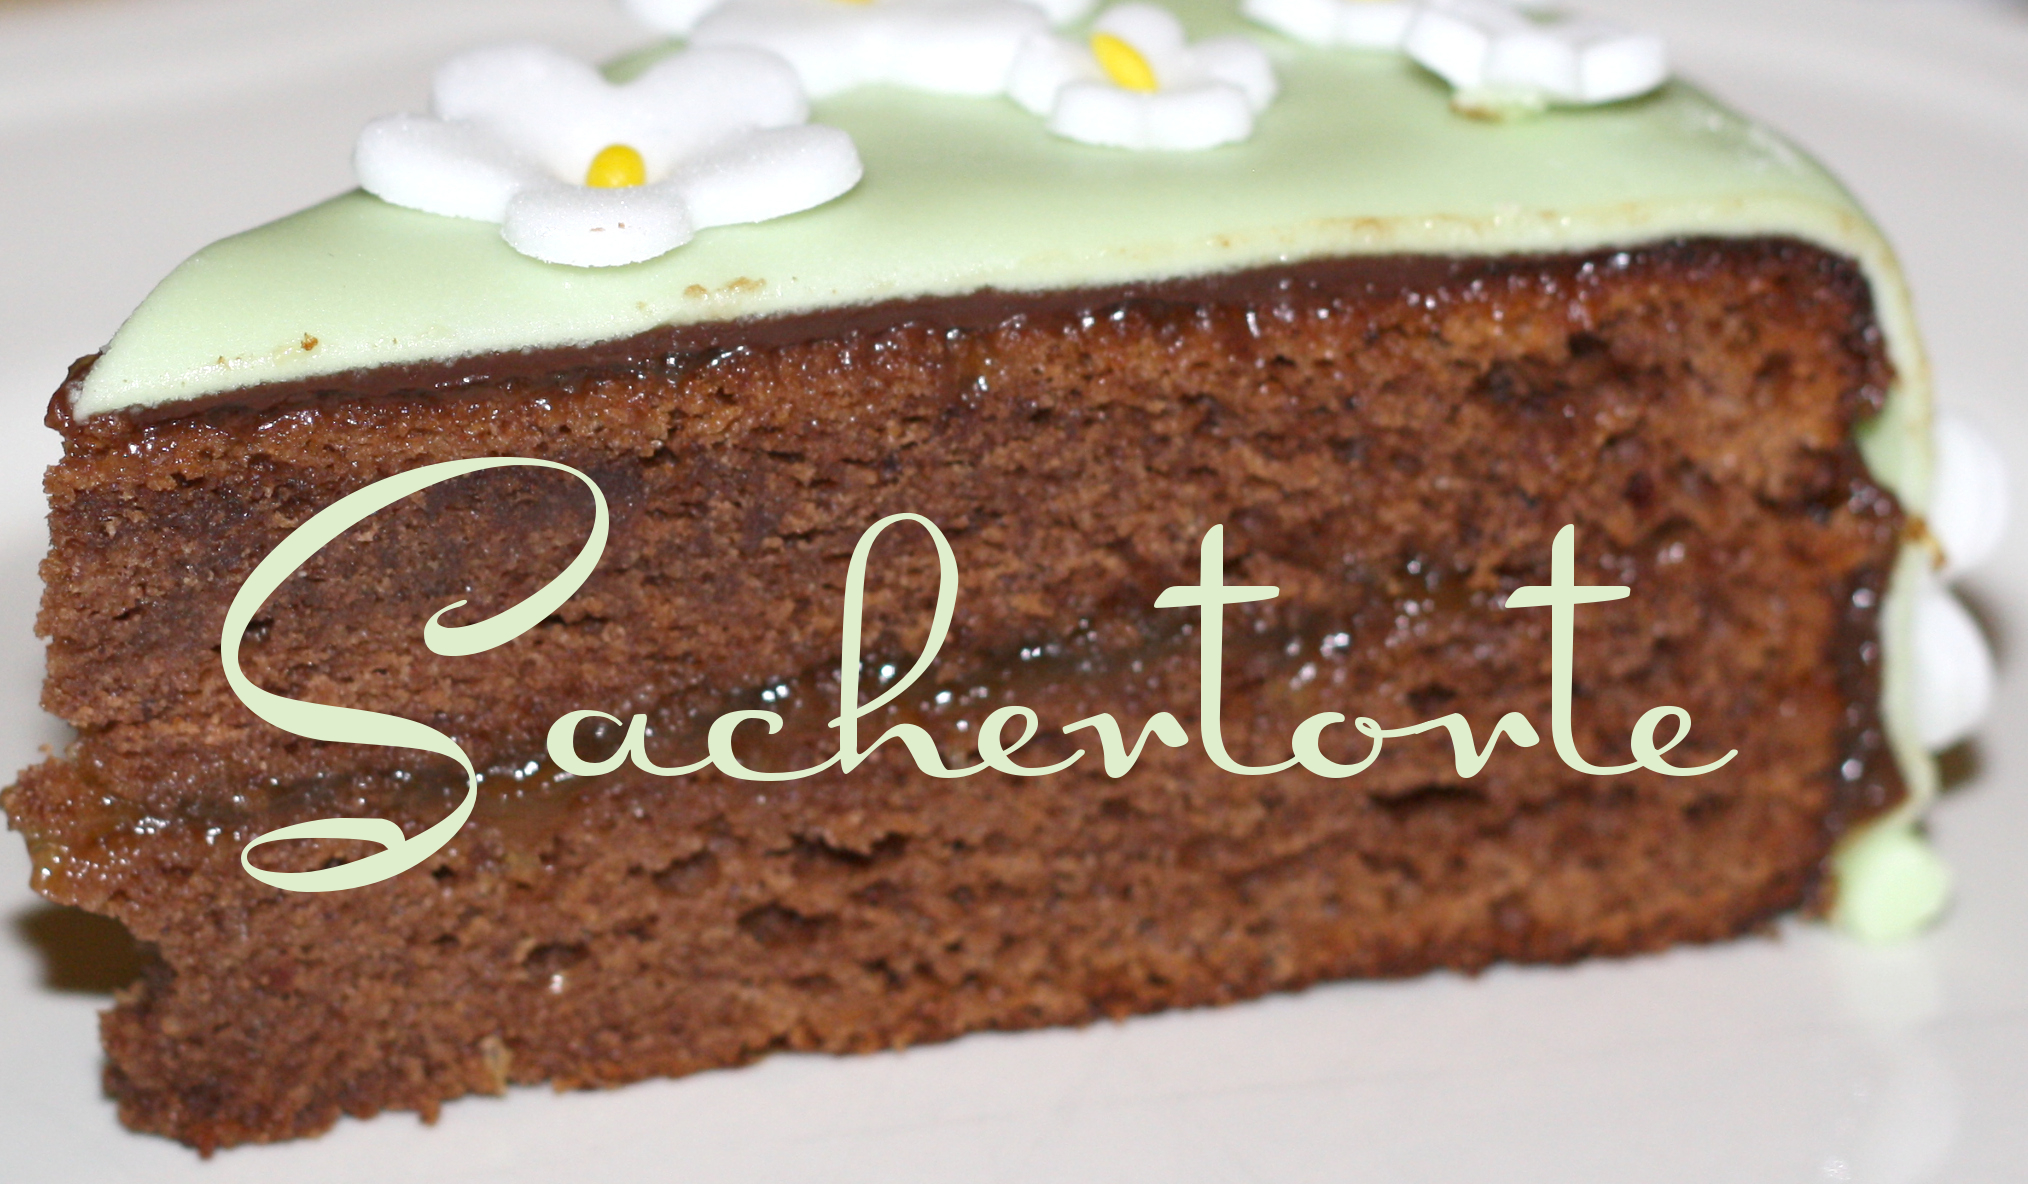 Mr. Grumpy's favourite Sachertorte